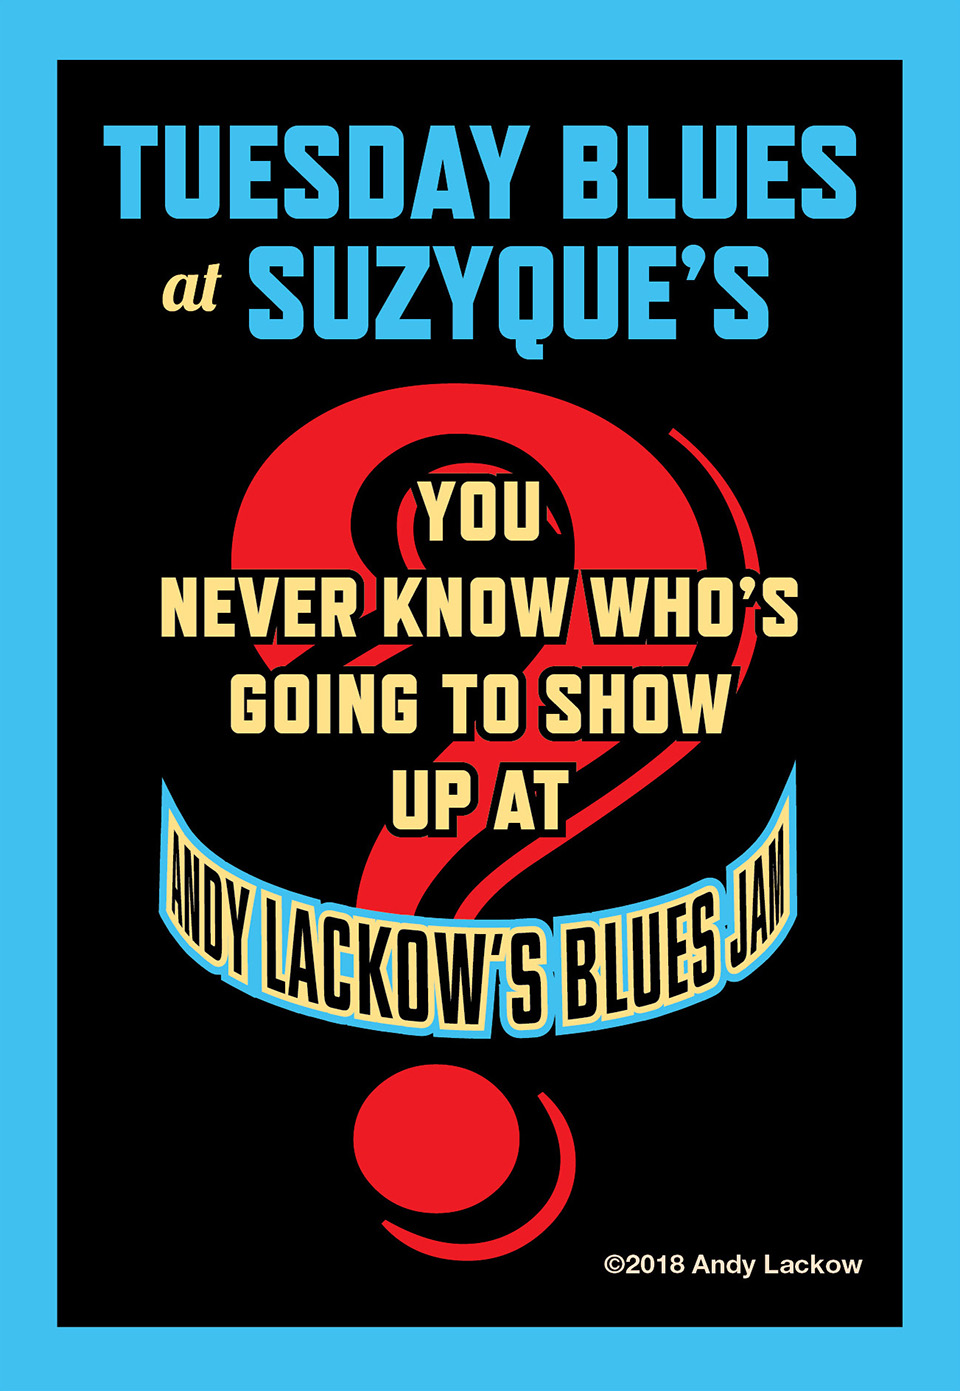 Tuesday Night Blues Jam Poster